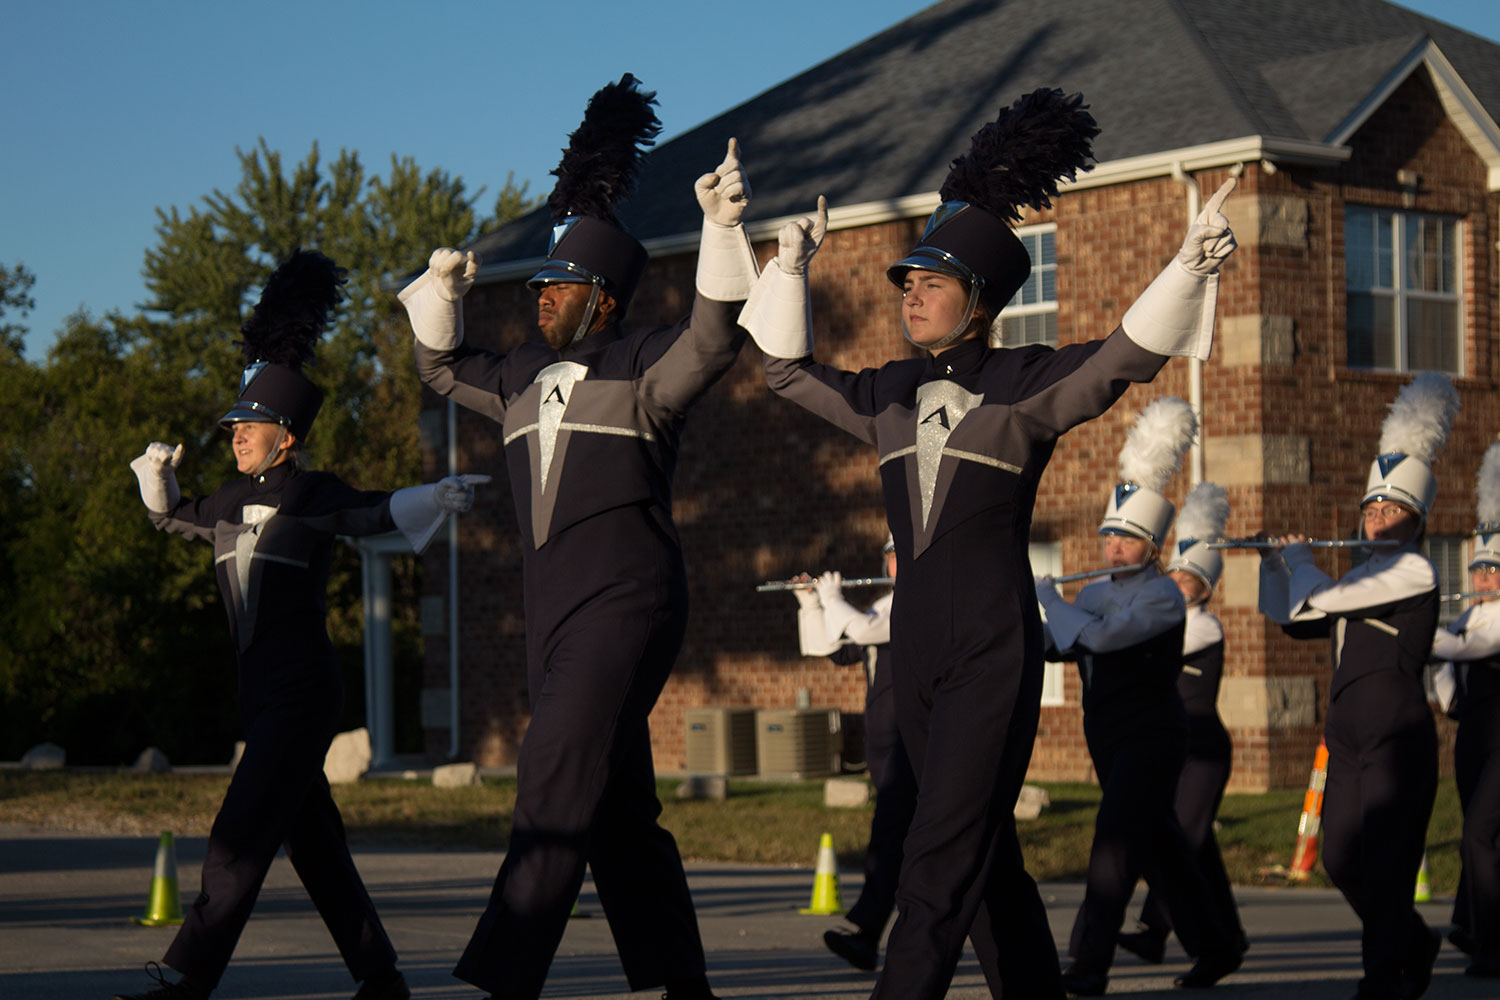 Abigail Tarleton, Austin Crudup, and Laurel Ammond lead the Spartan Bands during the Homecoming parade. Ammond was named to All State Honor Band Dec. 1.